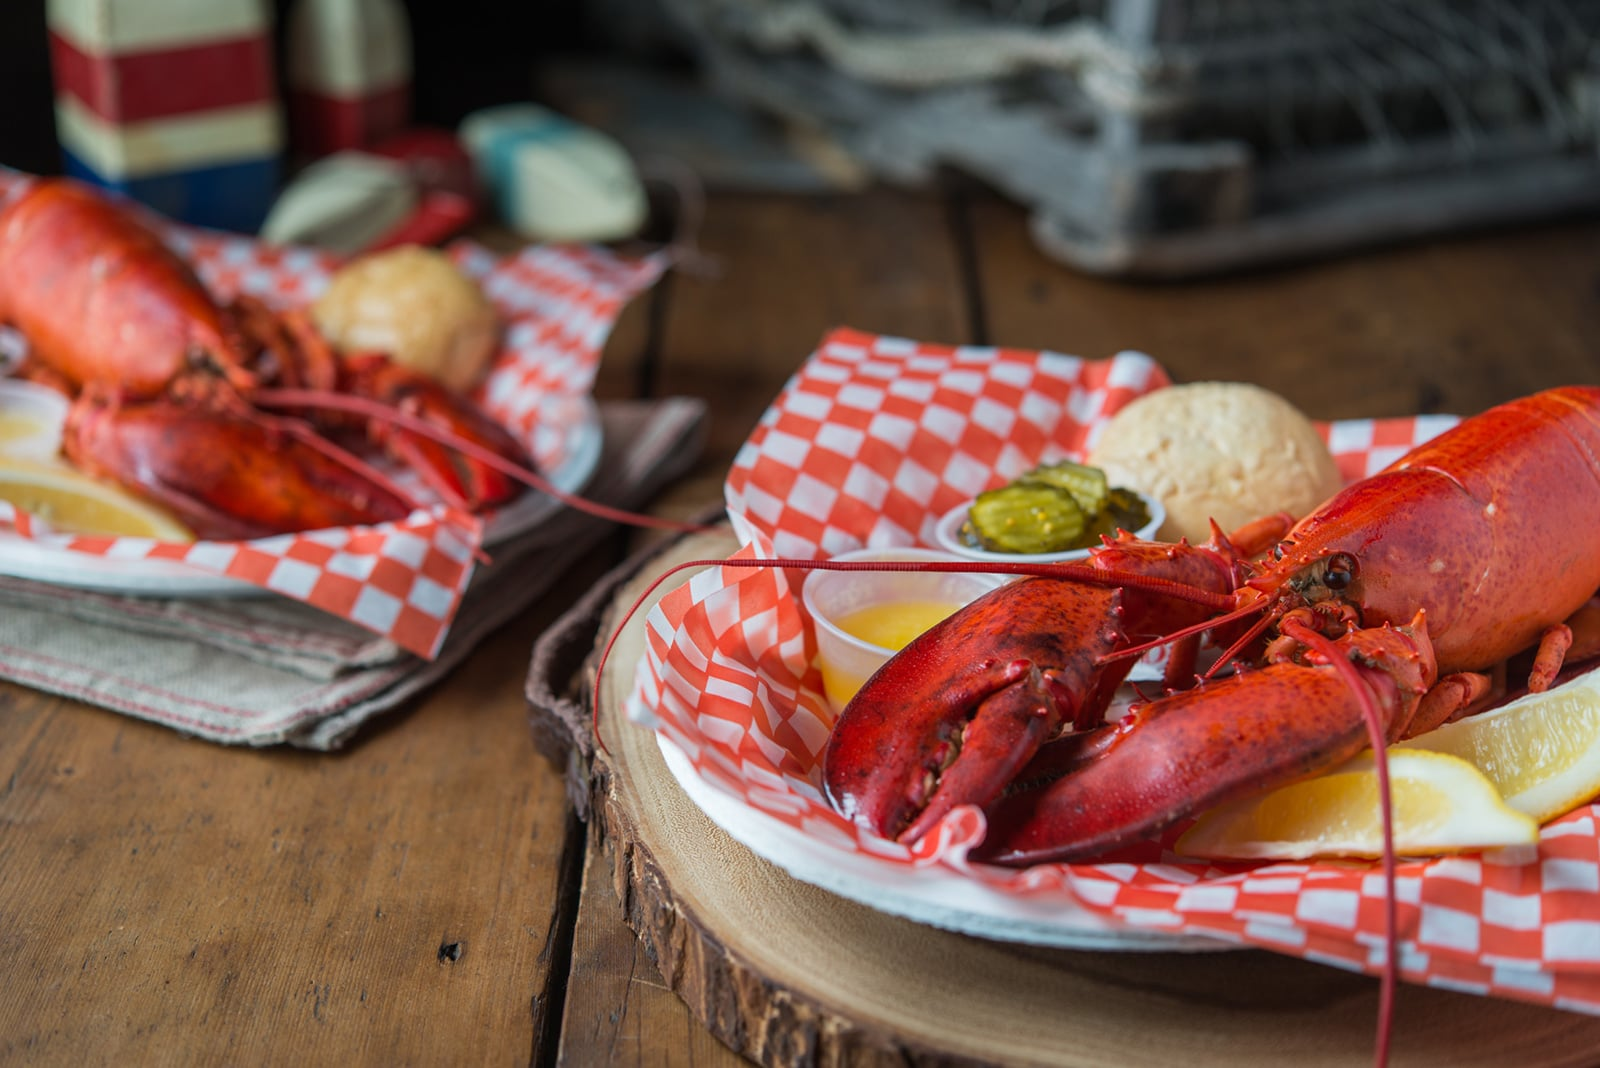 Colville Bay Oysters, The Lobster Shack